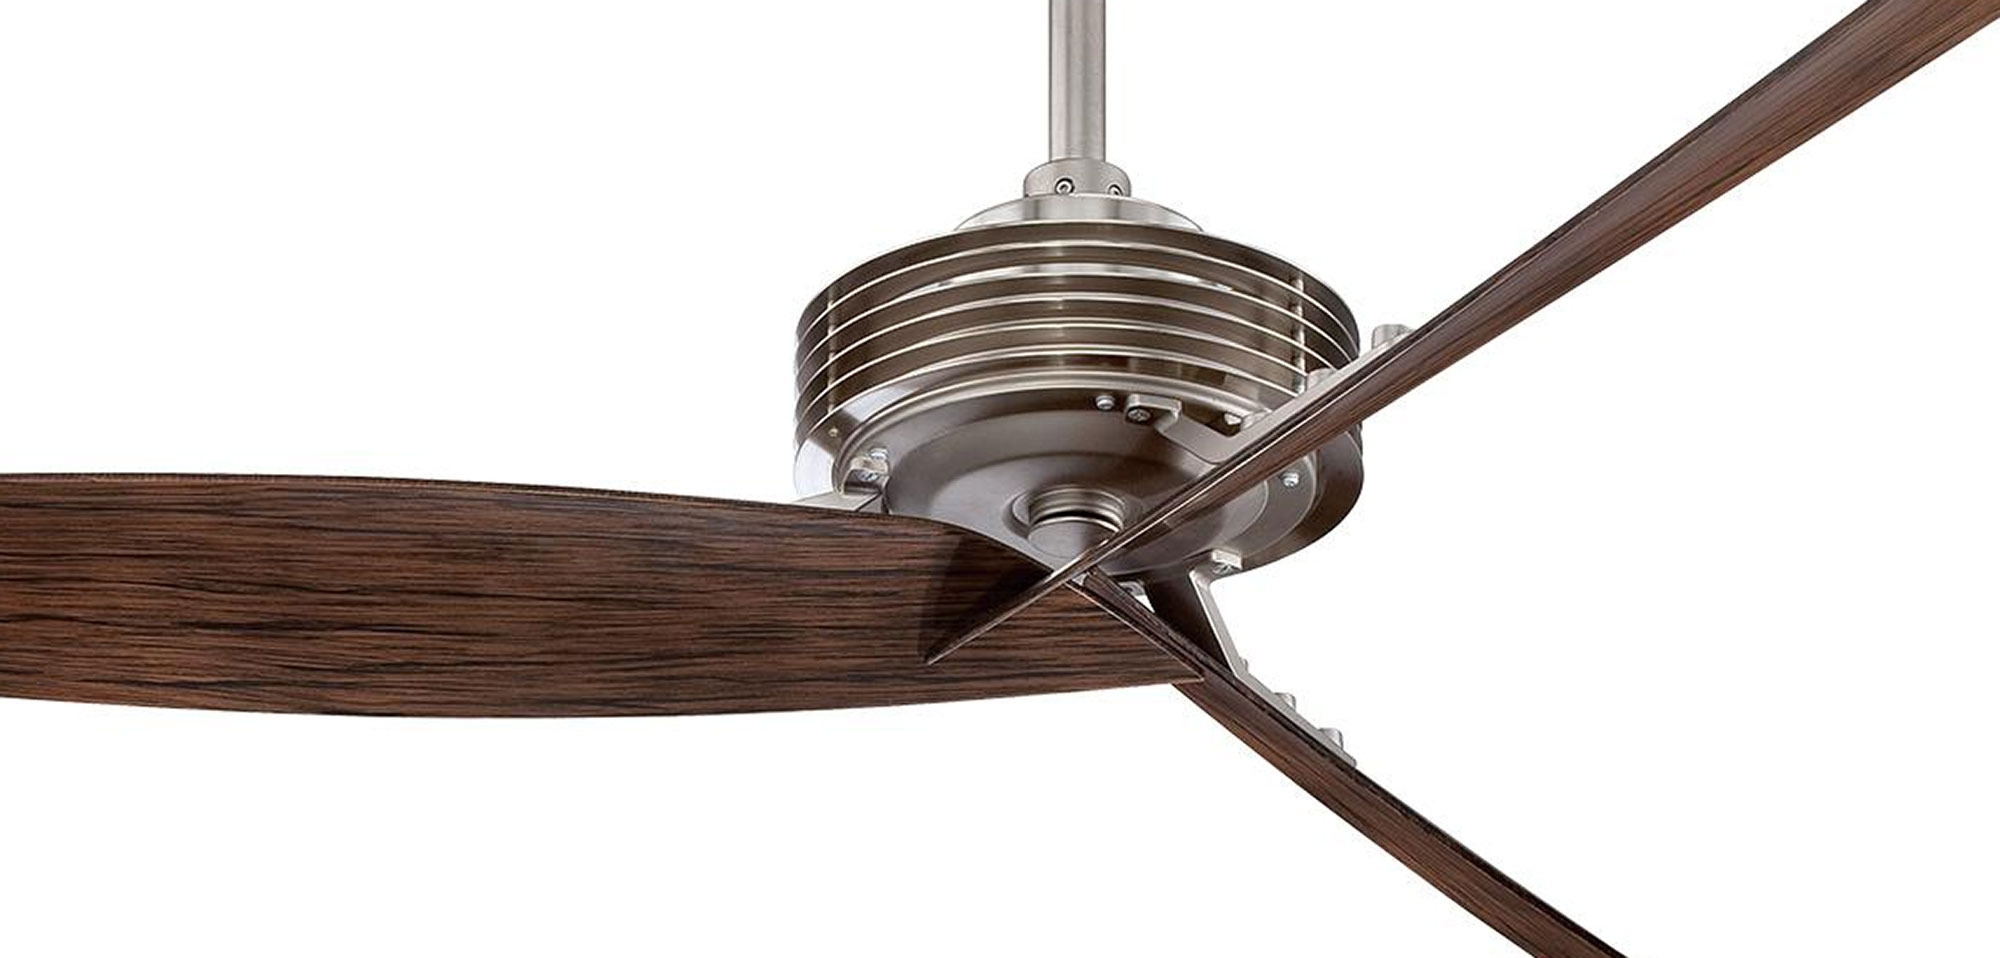 Unique Ceiling Fans For Modern Home Design – Interior Decorating Regarding Fashionable Quality Outdoor Ceiling Fans (View 20 of 20)